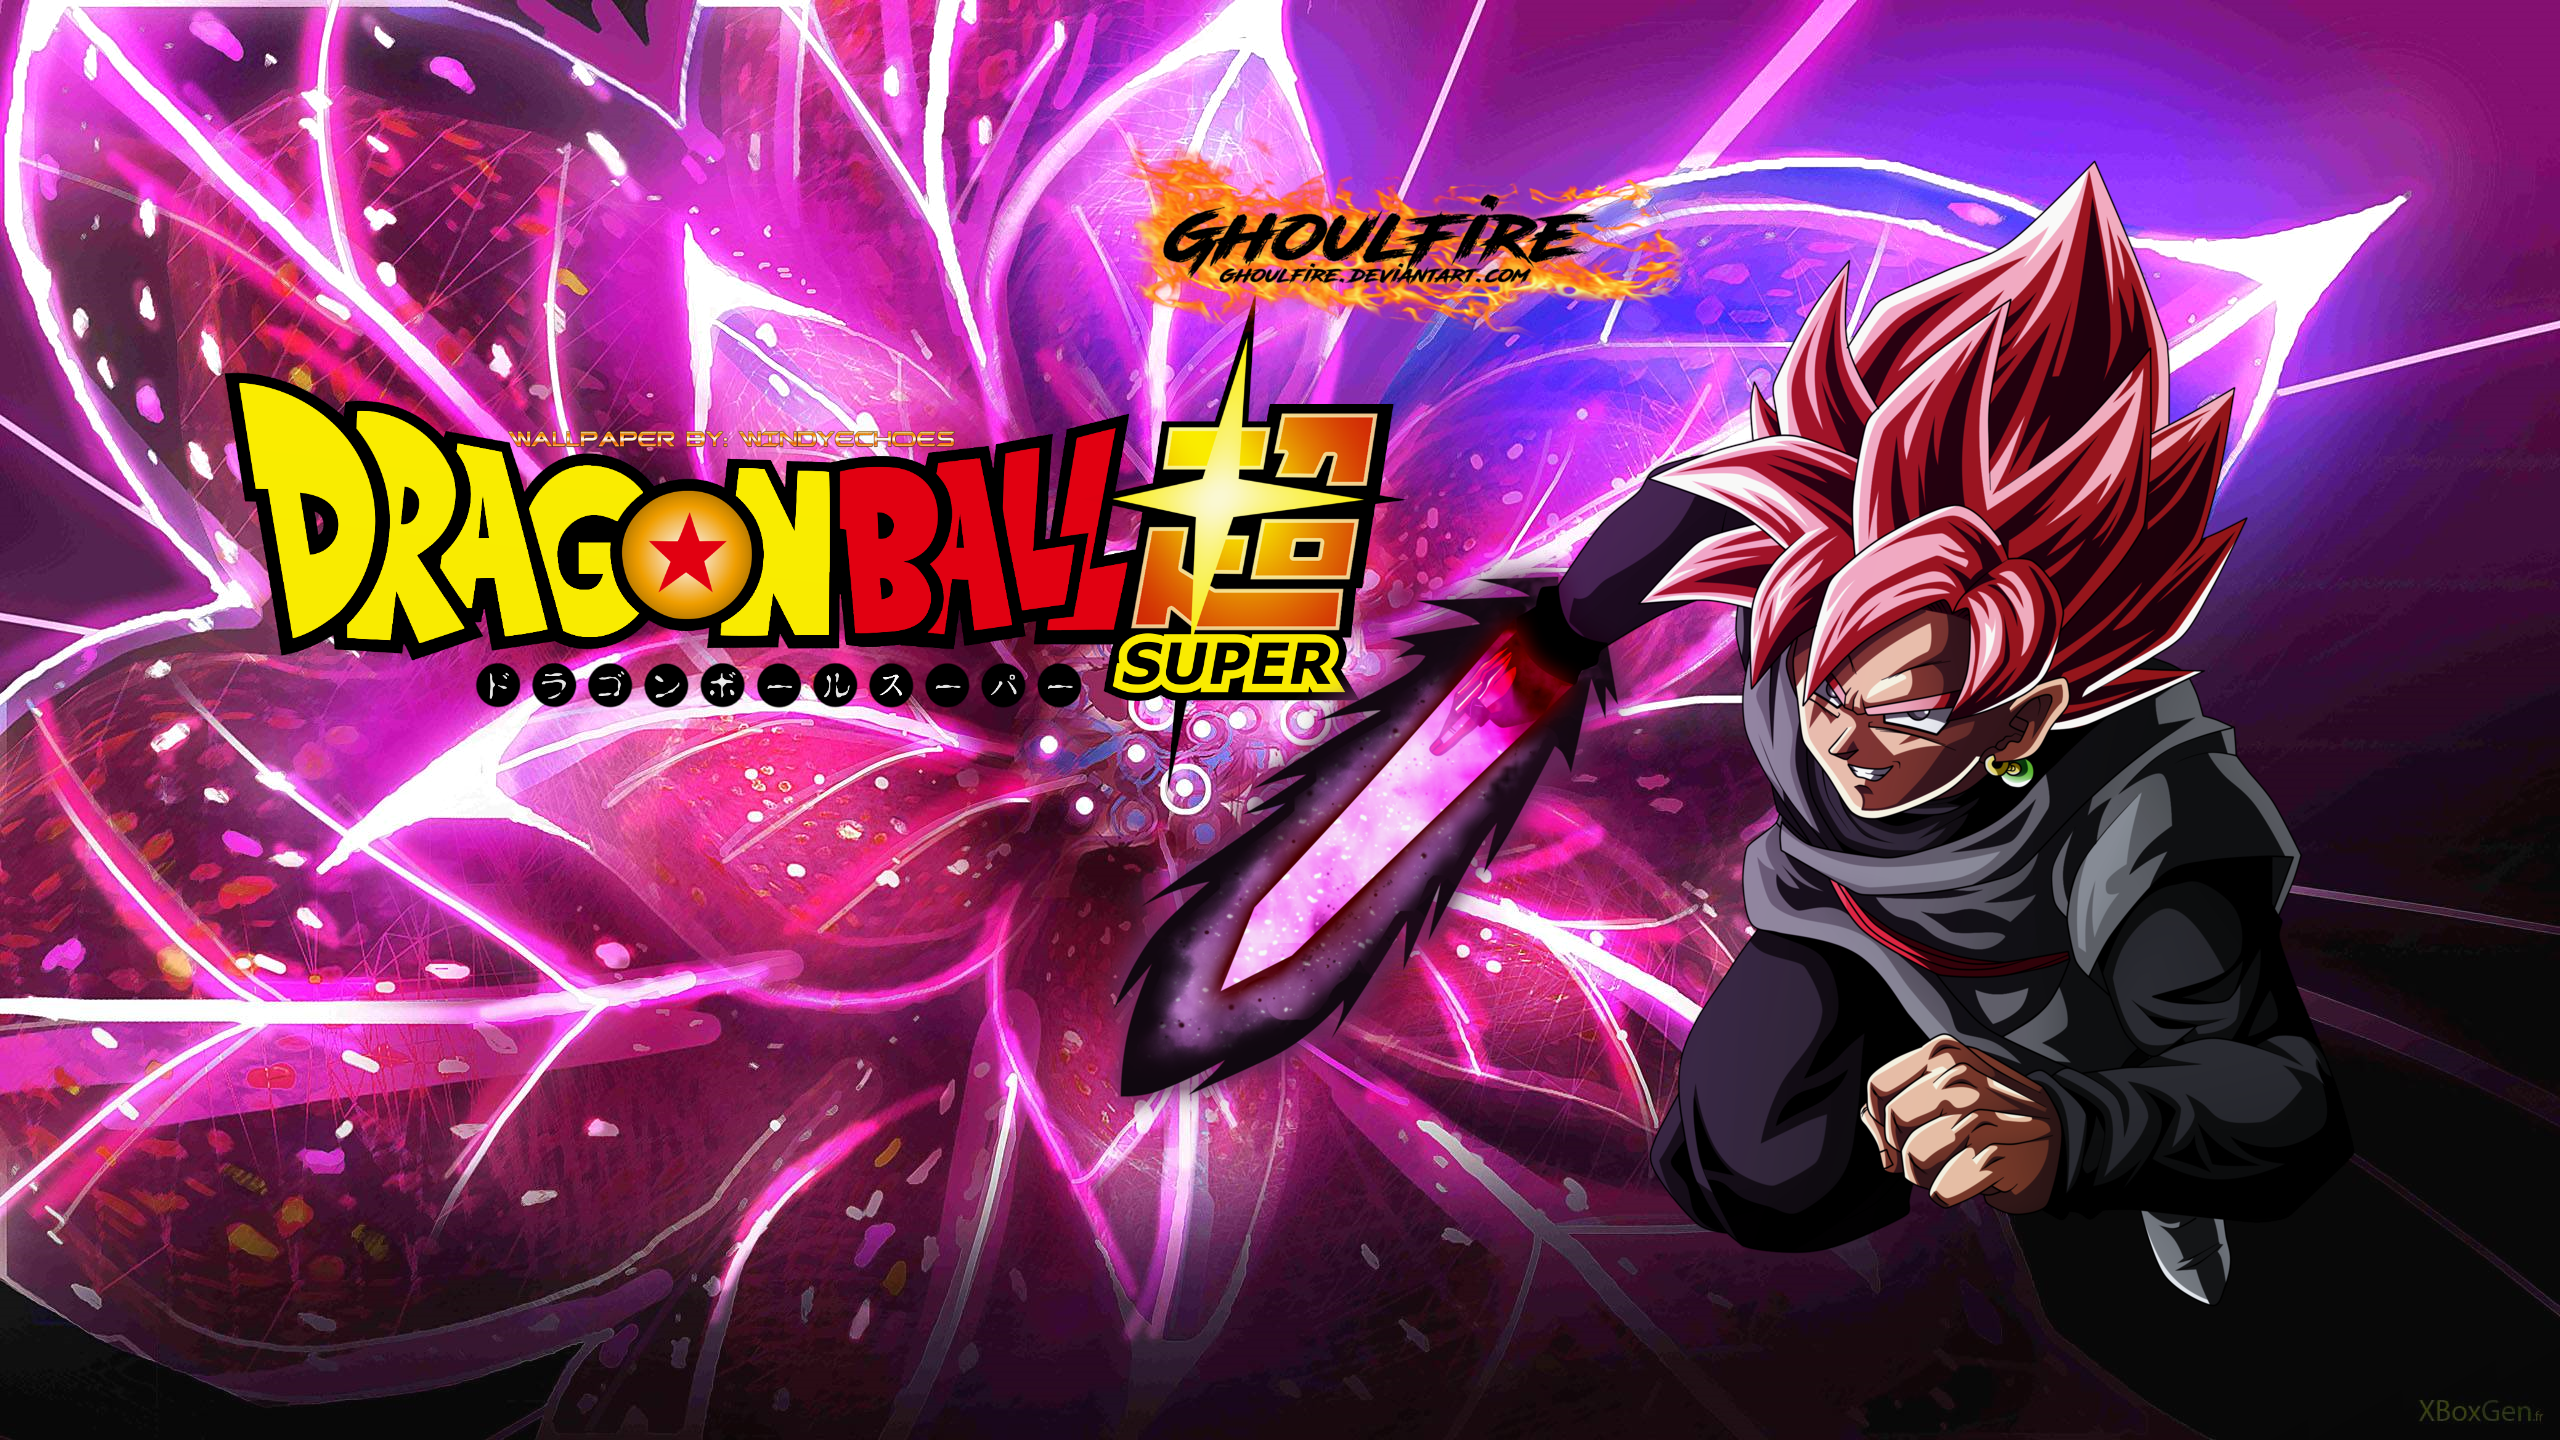 Super Saiyan Rose Goku Black Wallpaper: Goku Black Super Saiyan Rose Background By WindyEchoes On